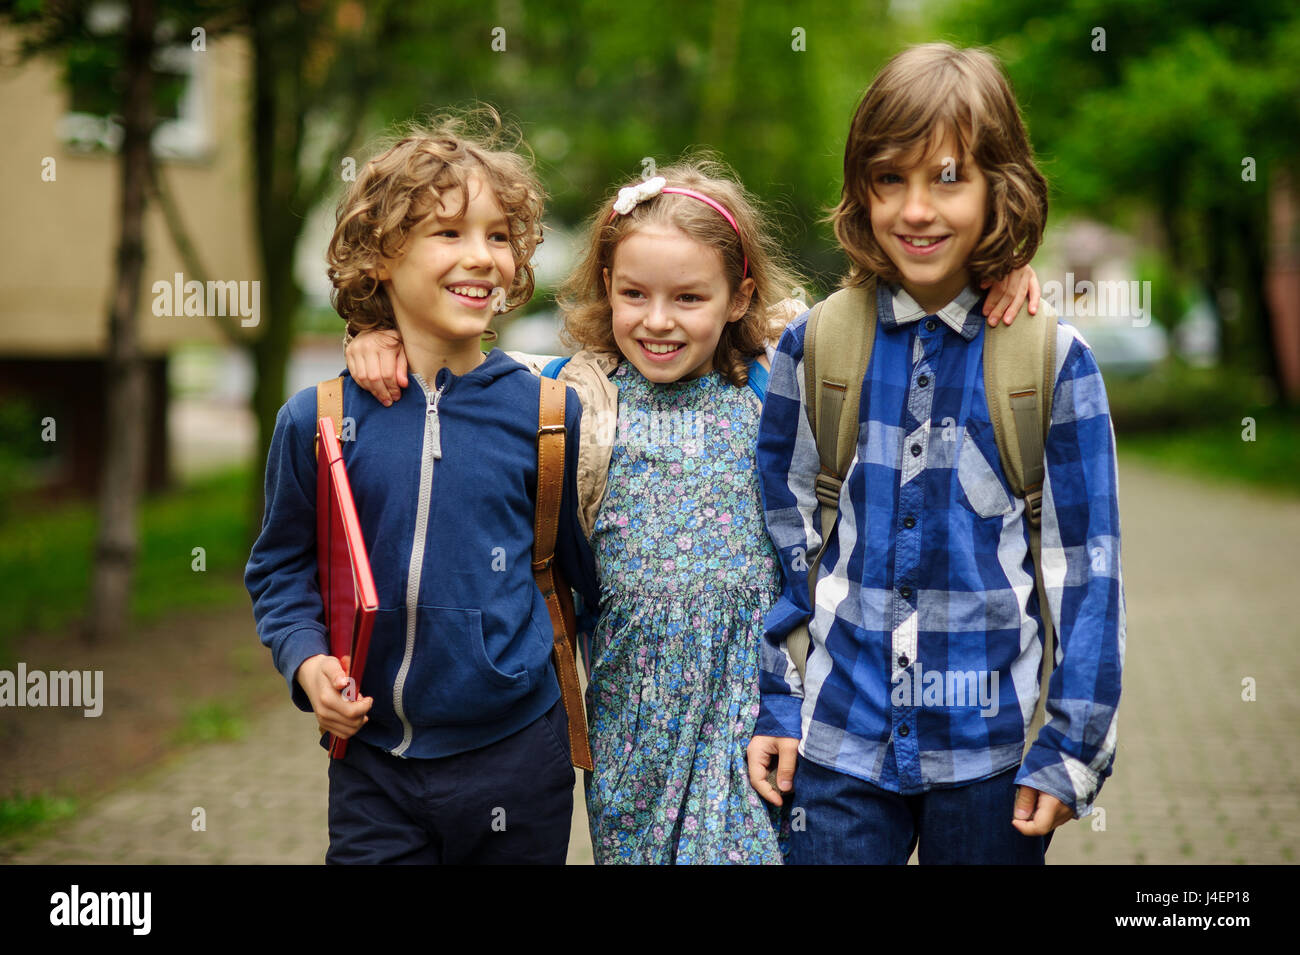 Three little school students, two boys and the girl, stand in an embrace on the schoolyard. Children's friendship. - Stock Image